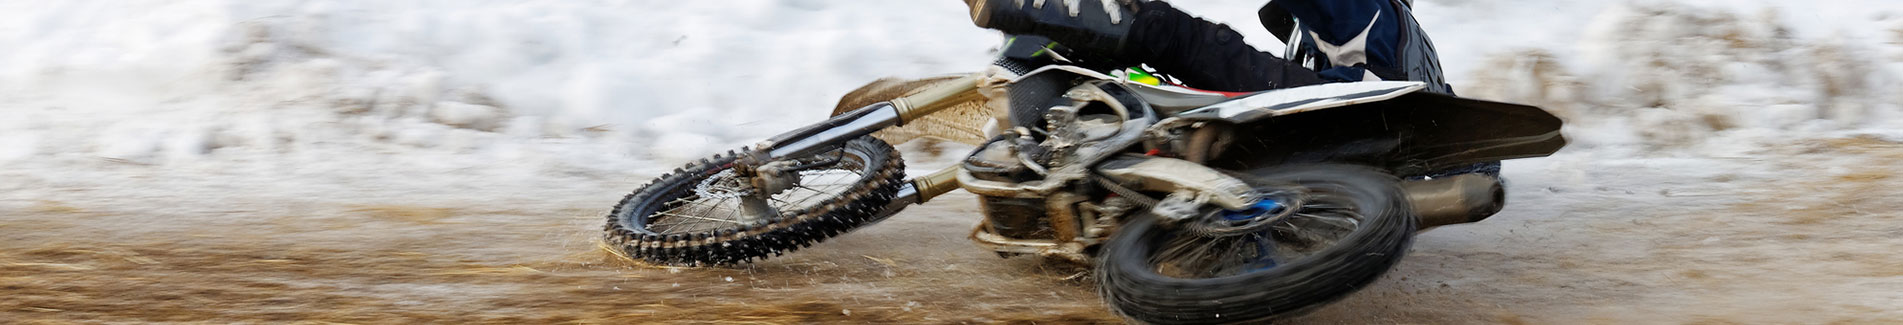 Motorcycle Accident Attorney Layton | Motorcycle Accident ...